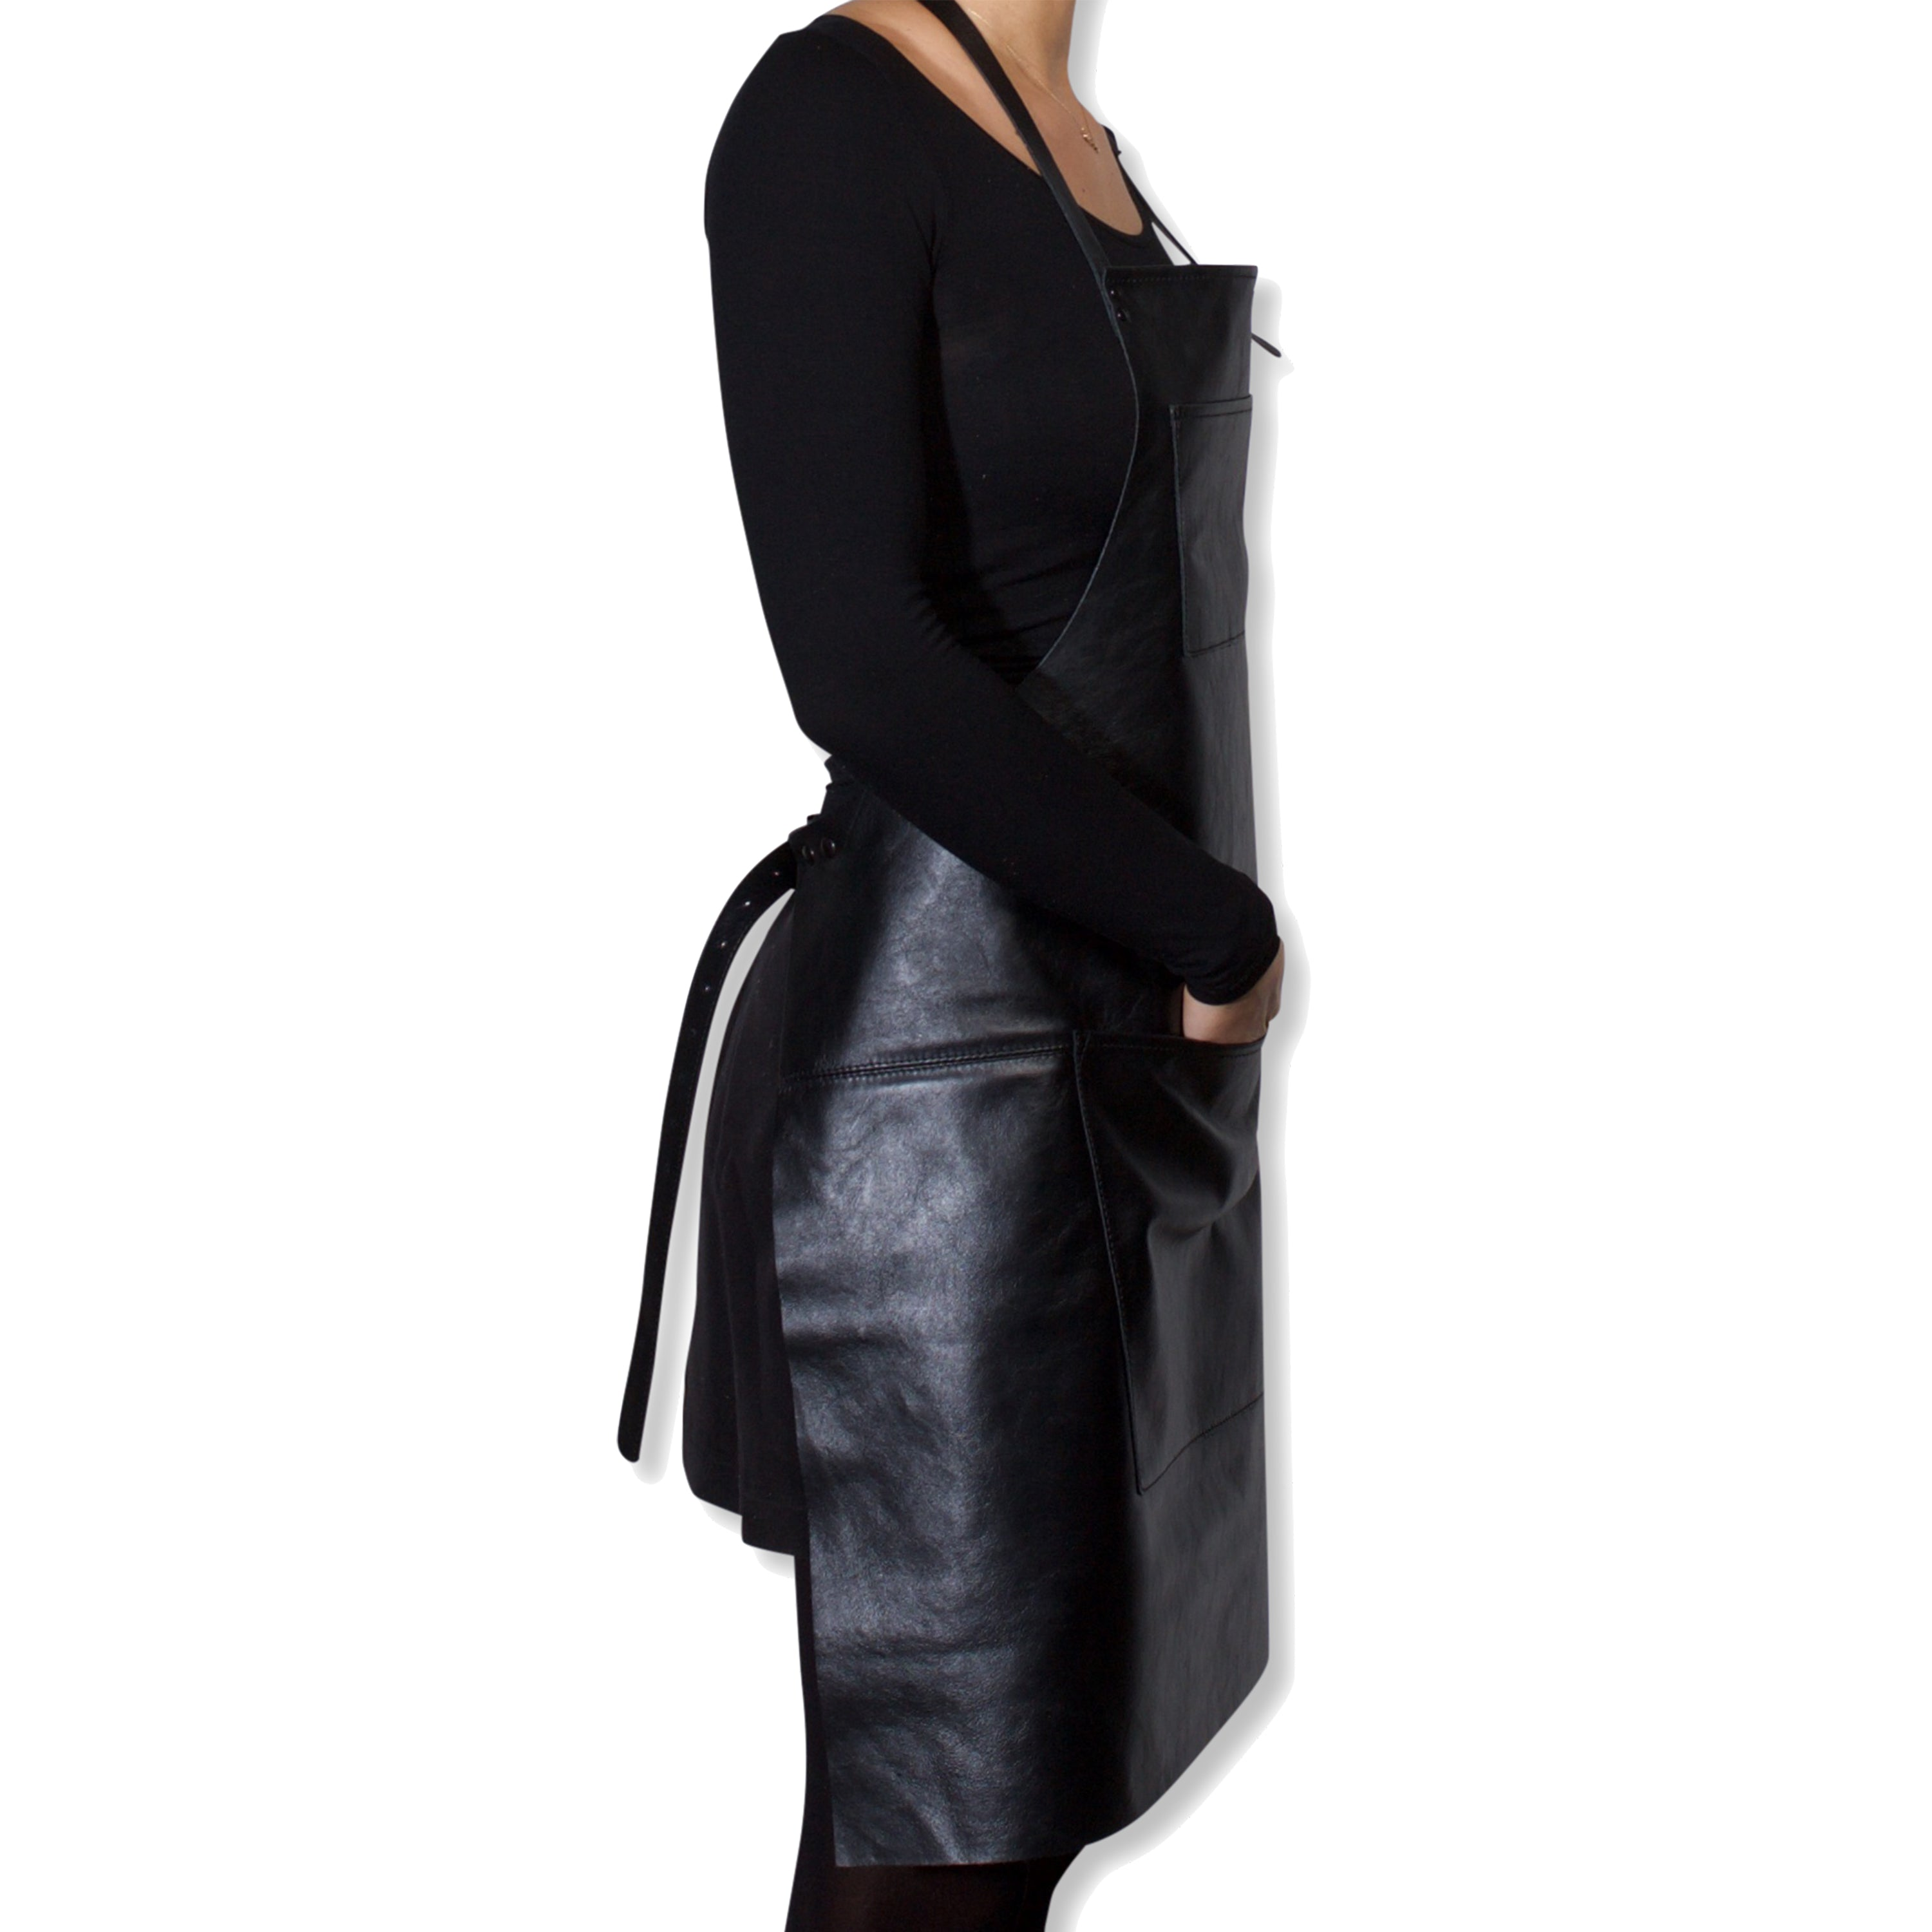 "Dutchdeluxes Full Length Coated Black Apron Leather ""Professional Apron"""